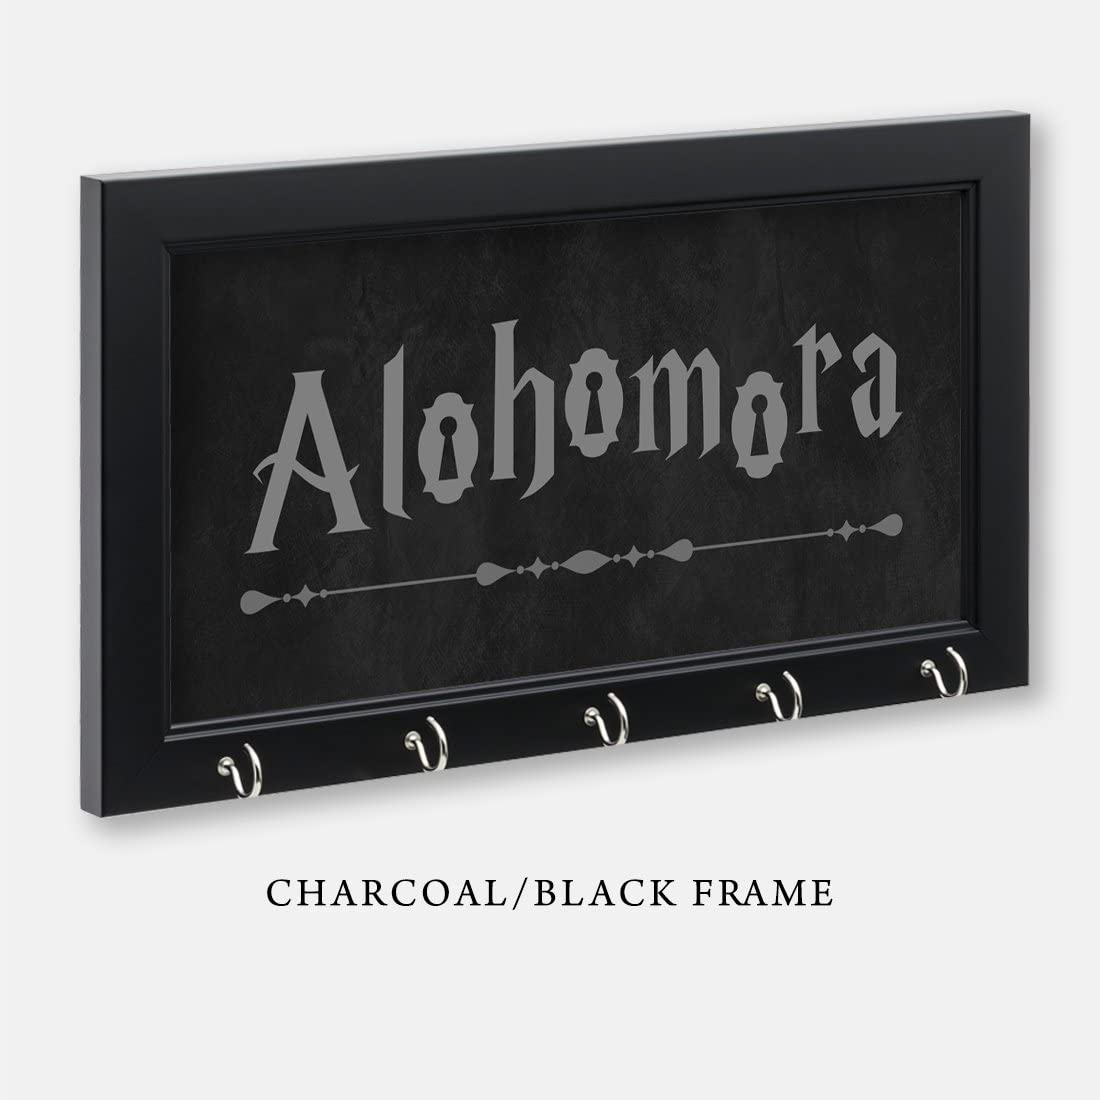 "Harry Potter Inspired Alohomora Key Holder, Charcoal/Black Frame, 11-1/2"" x 6-1/2"" With 5 Hooks"